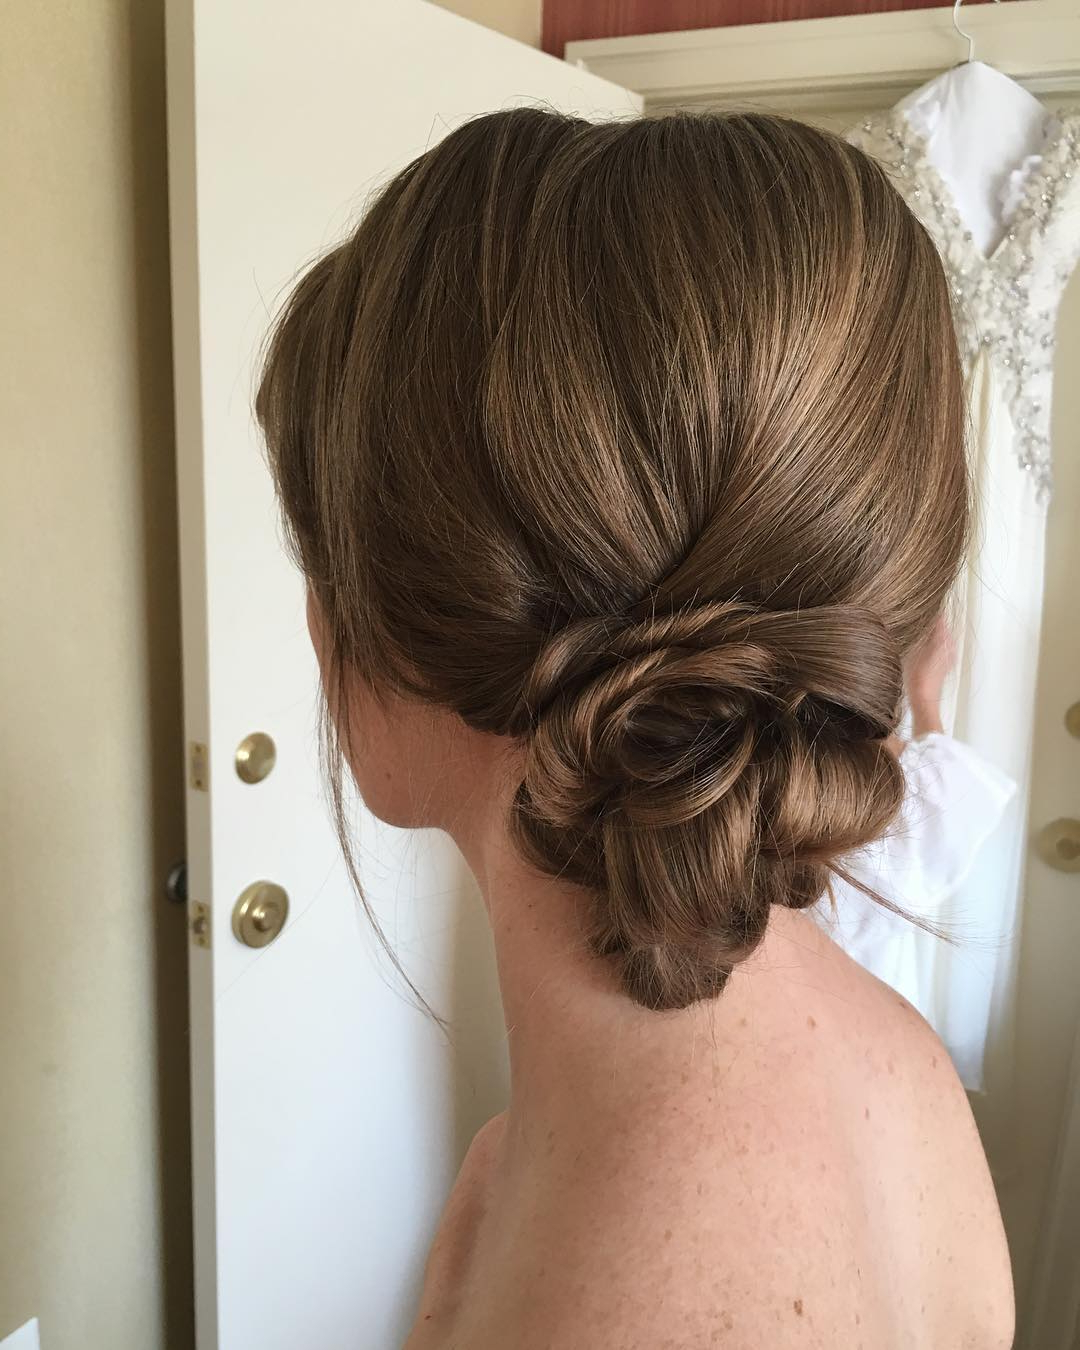 38 Flower Shaped Hairstyles For Special Occasions Throughout Most Recently Released Looped Low Bun Hairstyles (View 11 of 20)